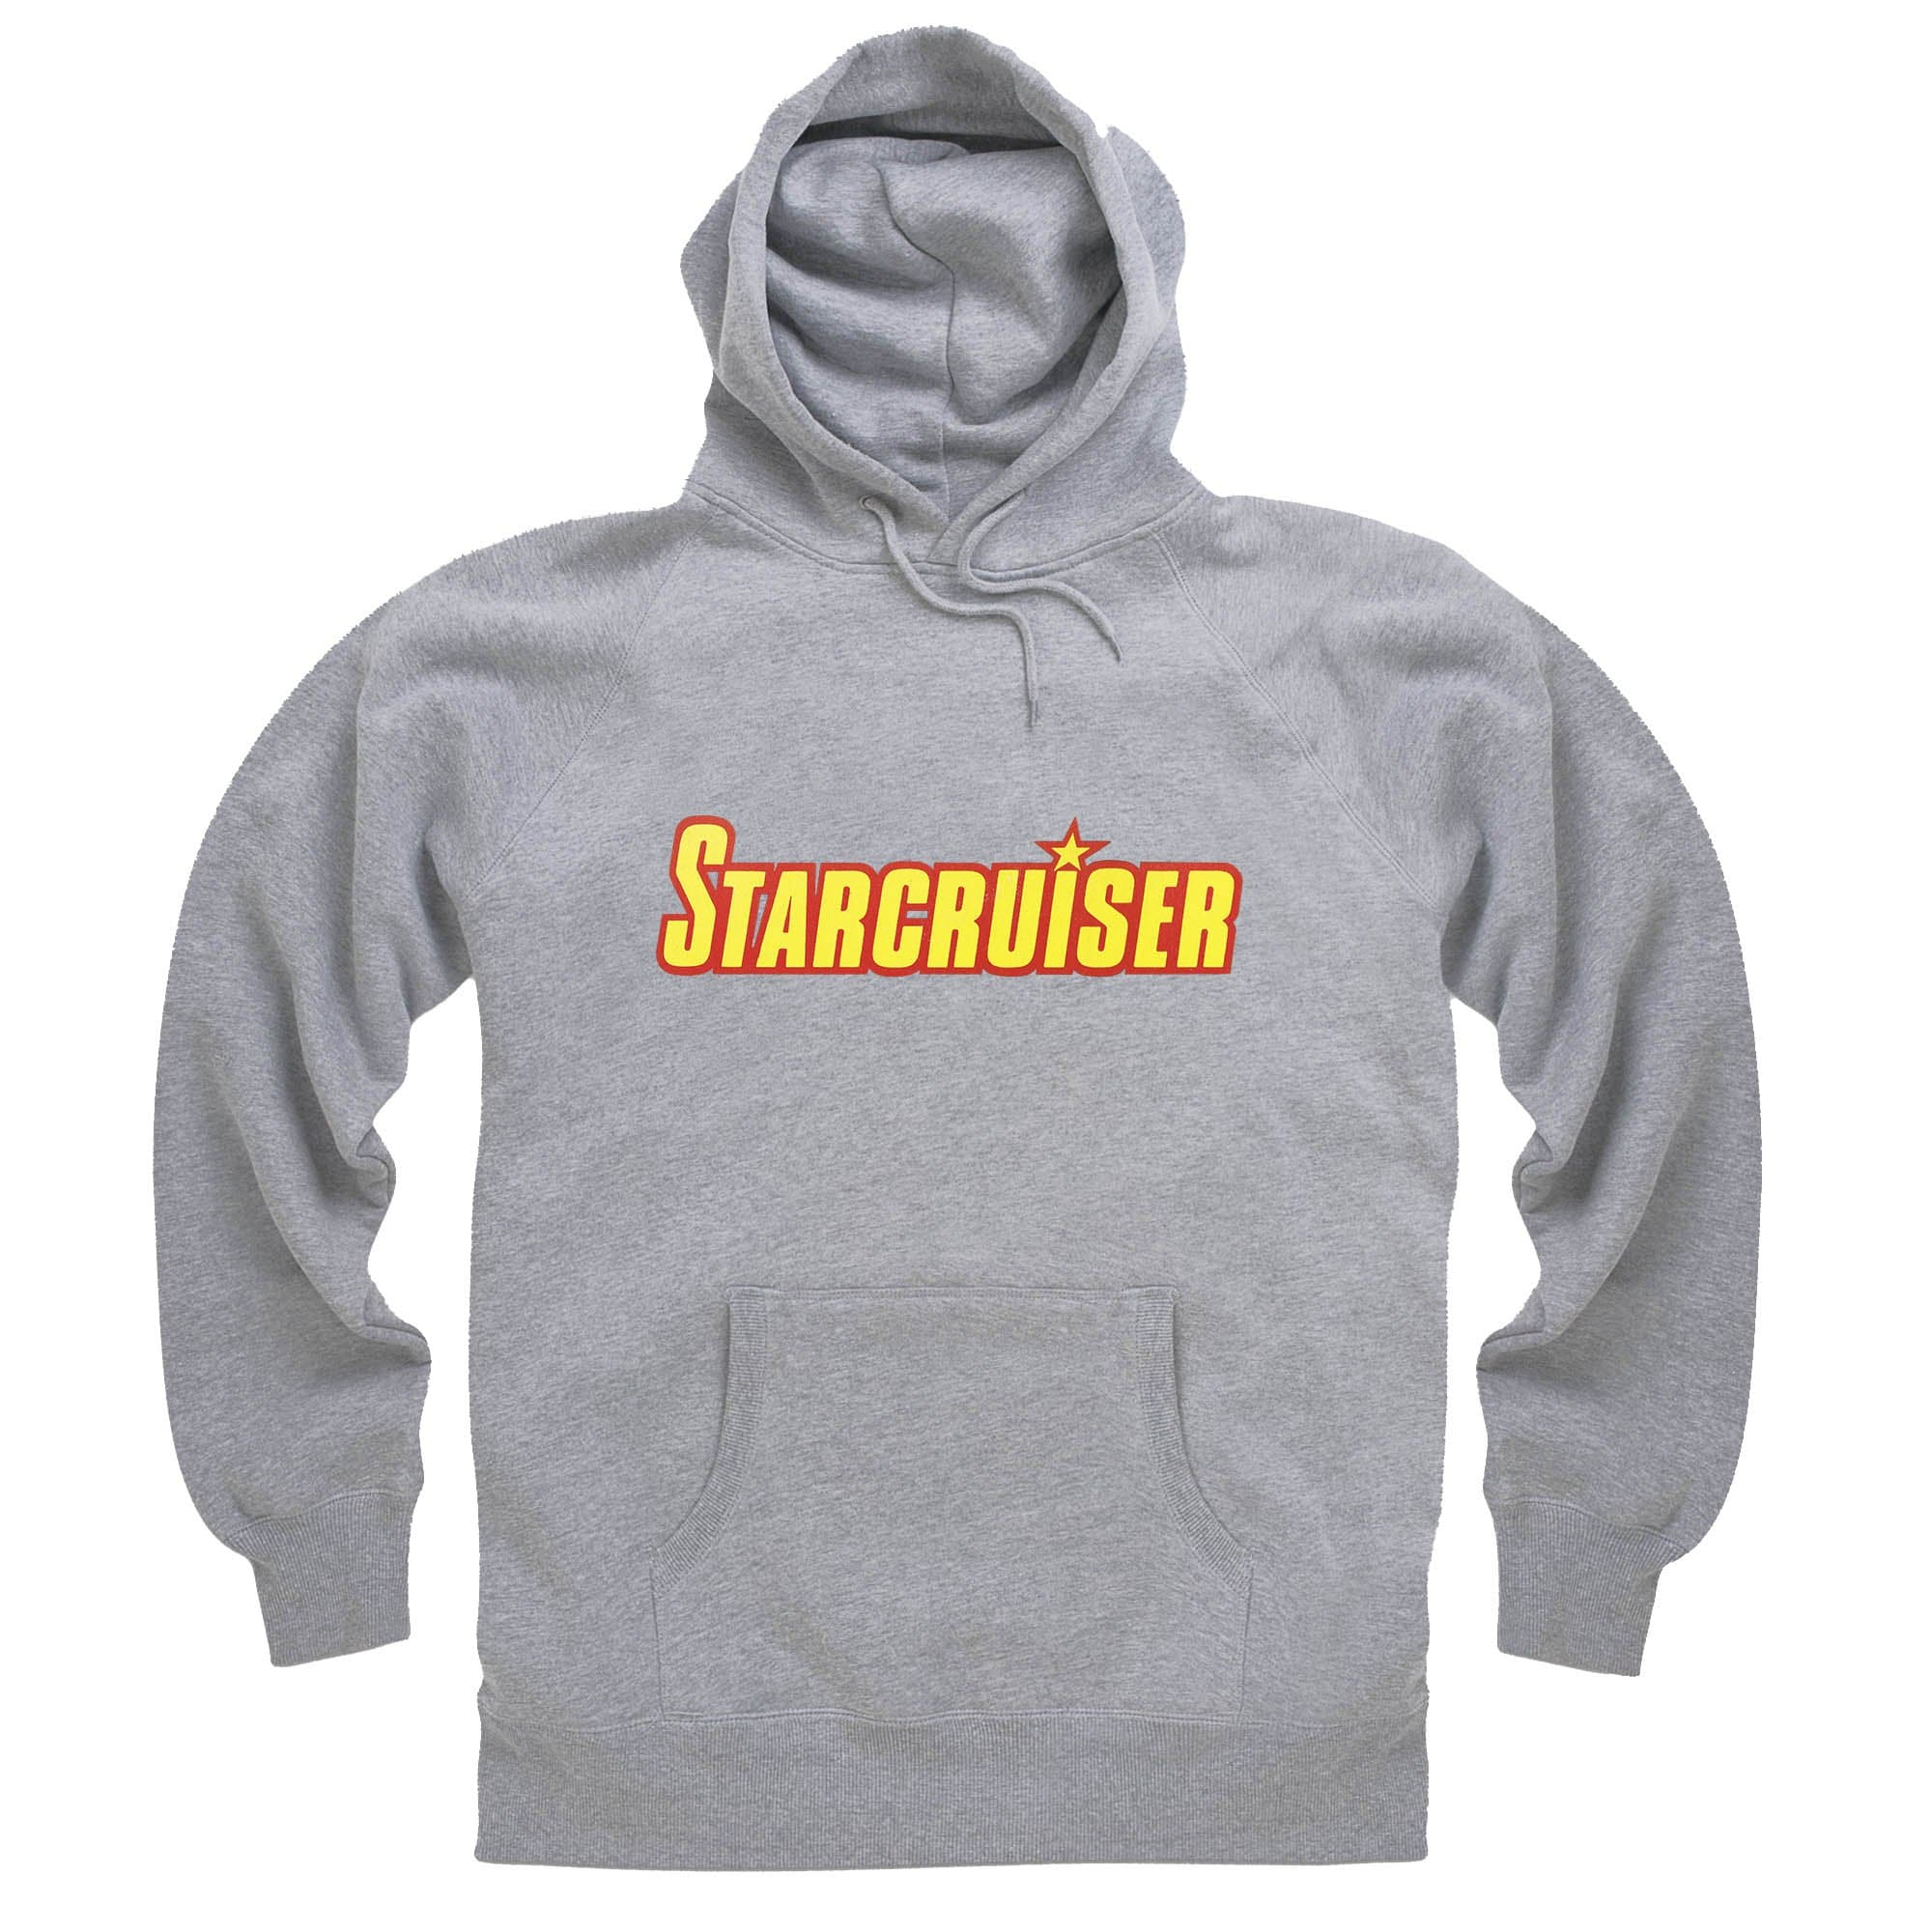 Starcruiser Logo Hoodie [Official & Exclusive] - The Gerry Anderson Store